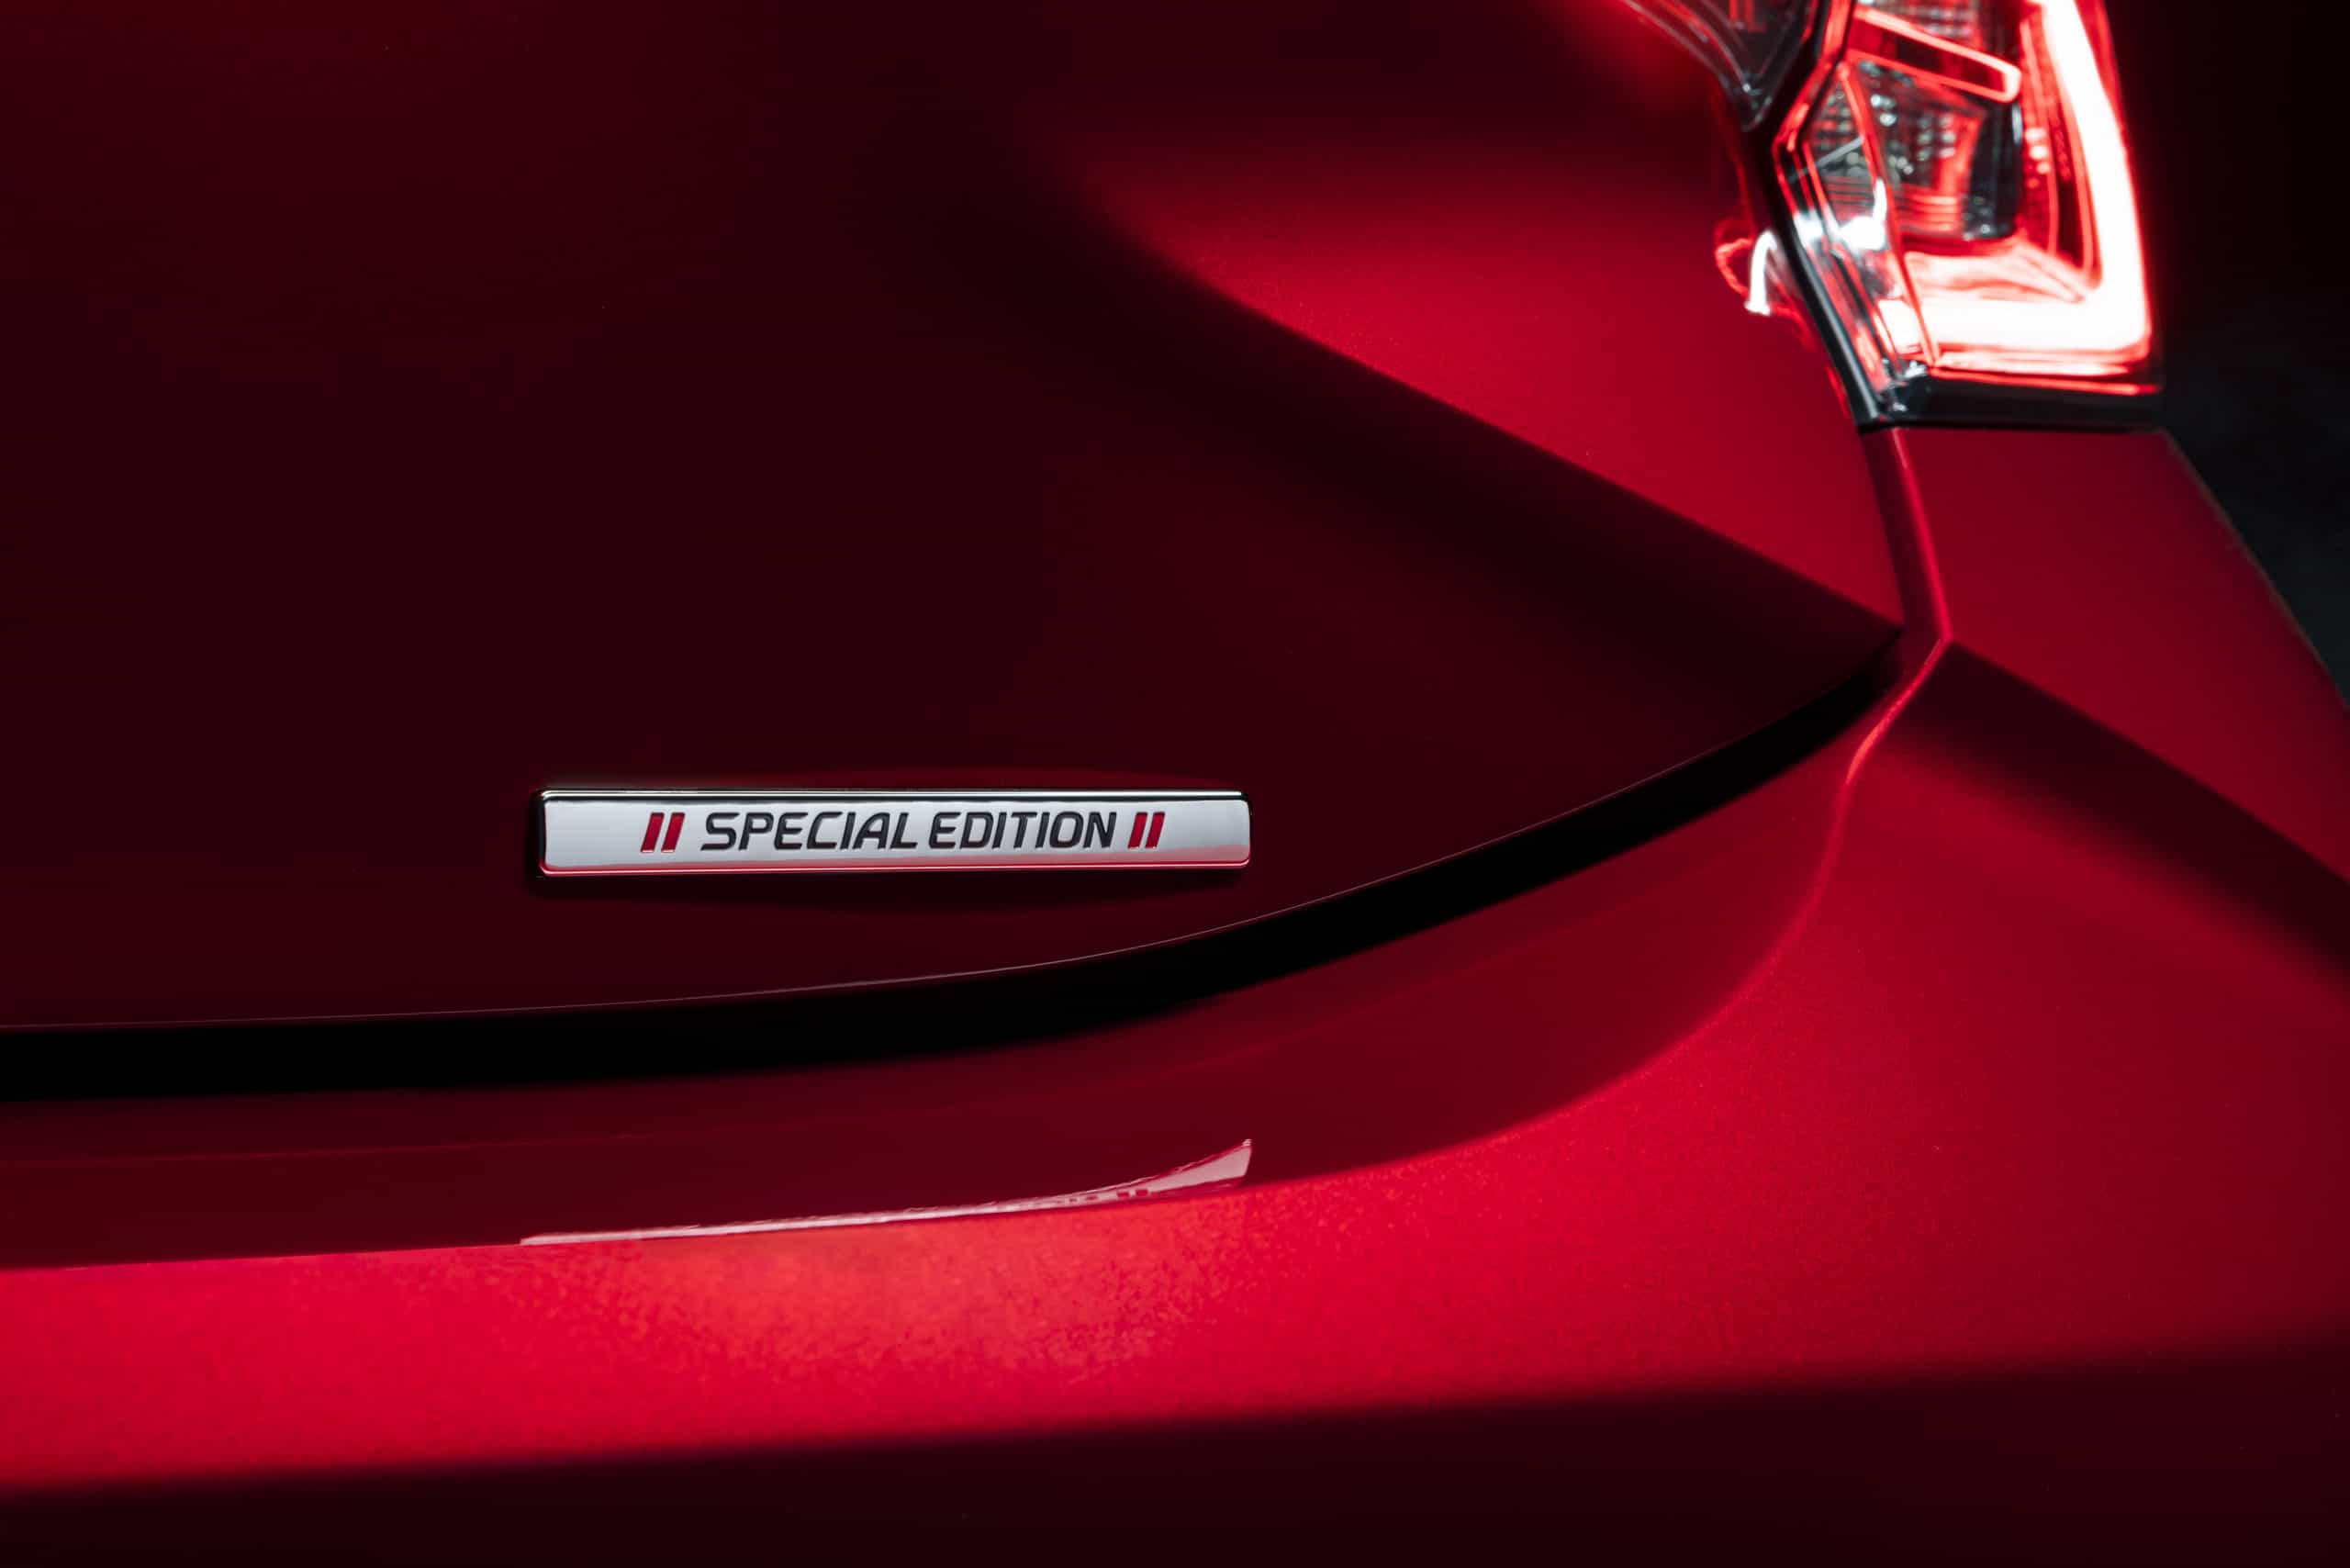 Corolla Hatchback Special Edition badge